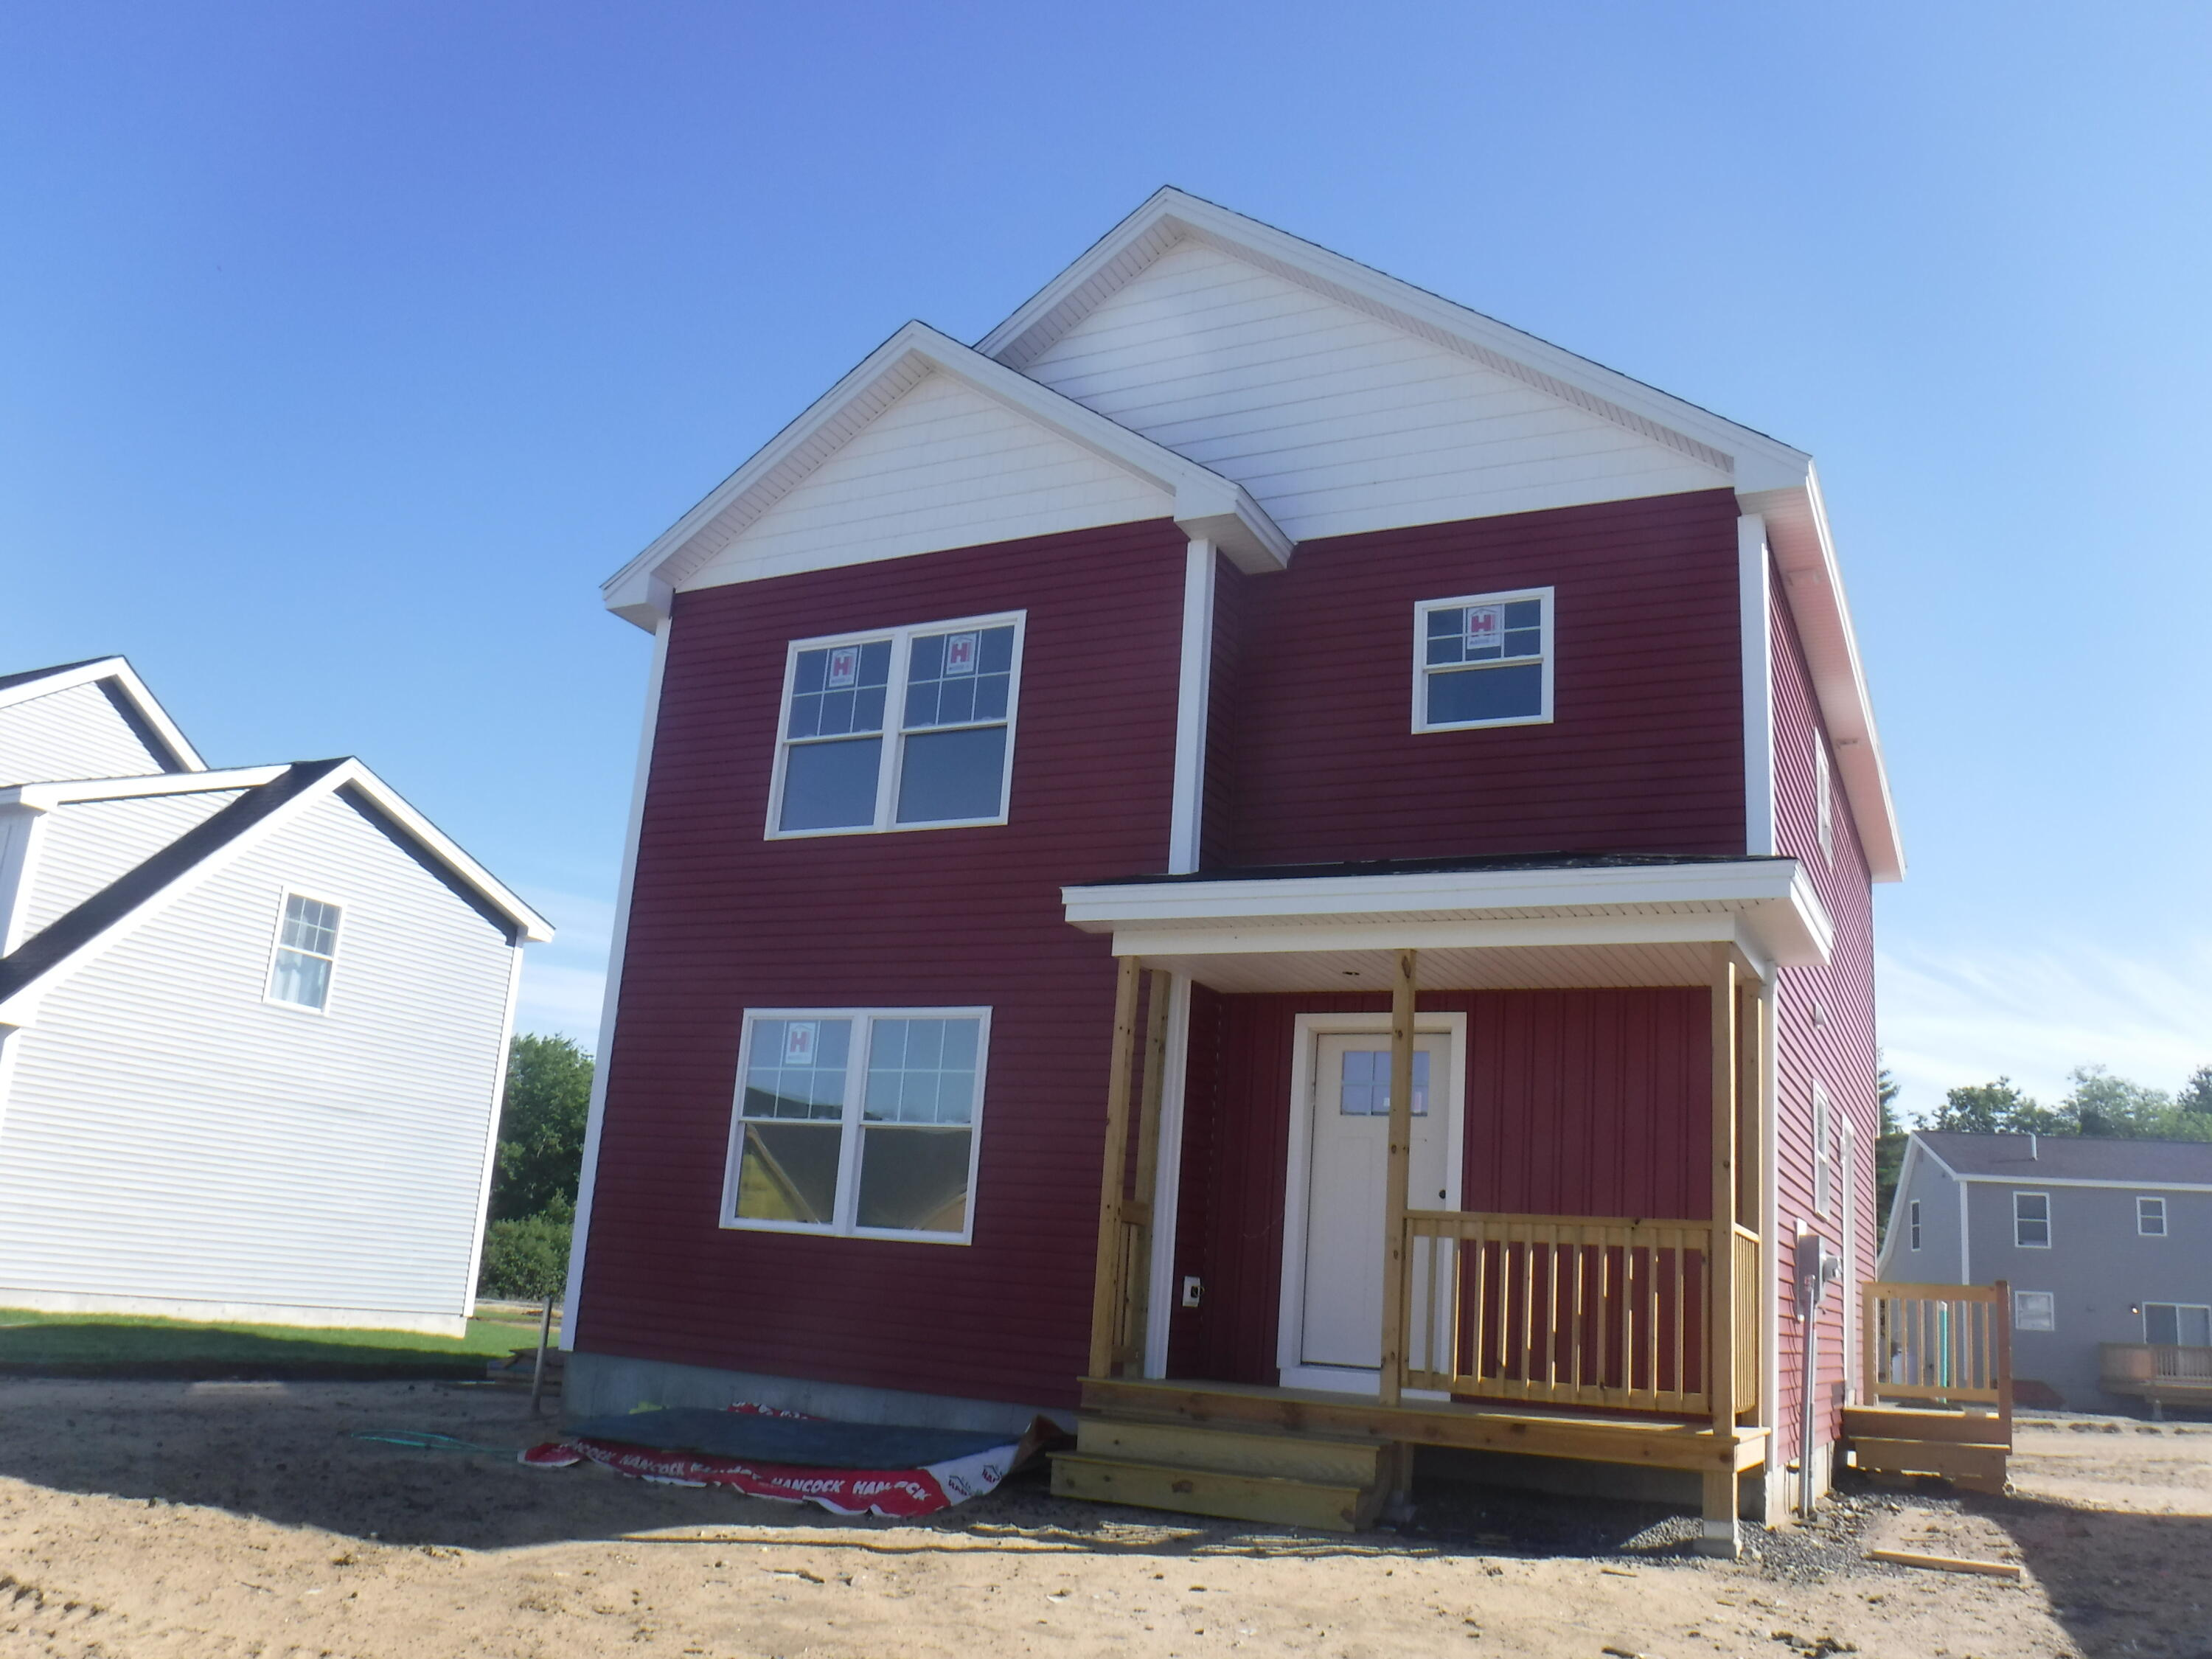 Main image for MLS listing 1499232